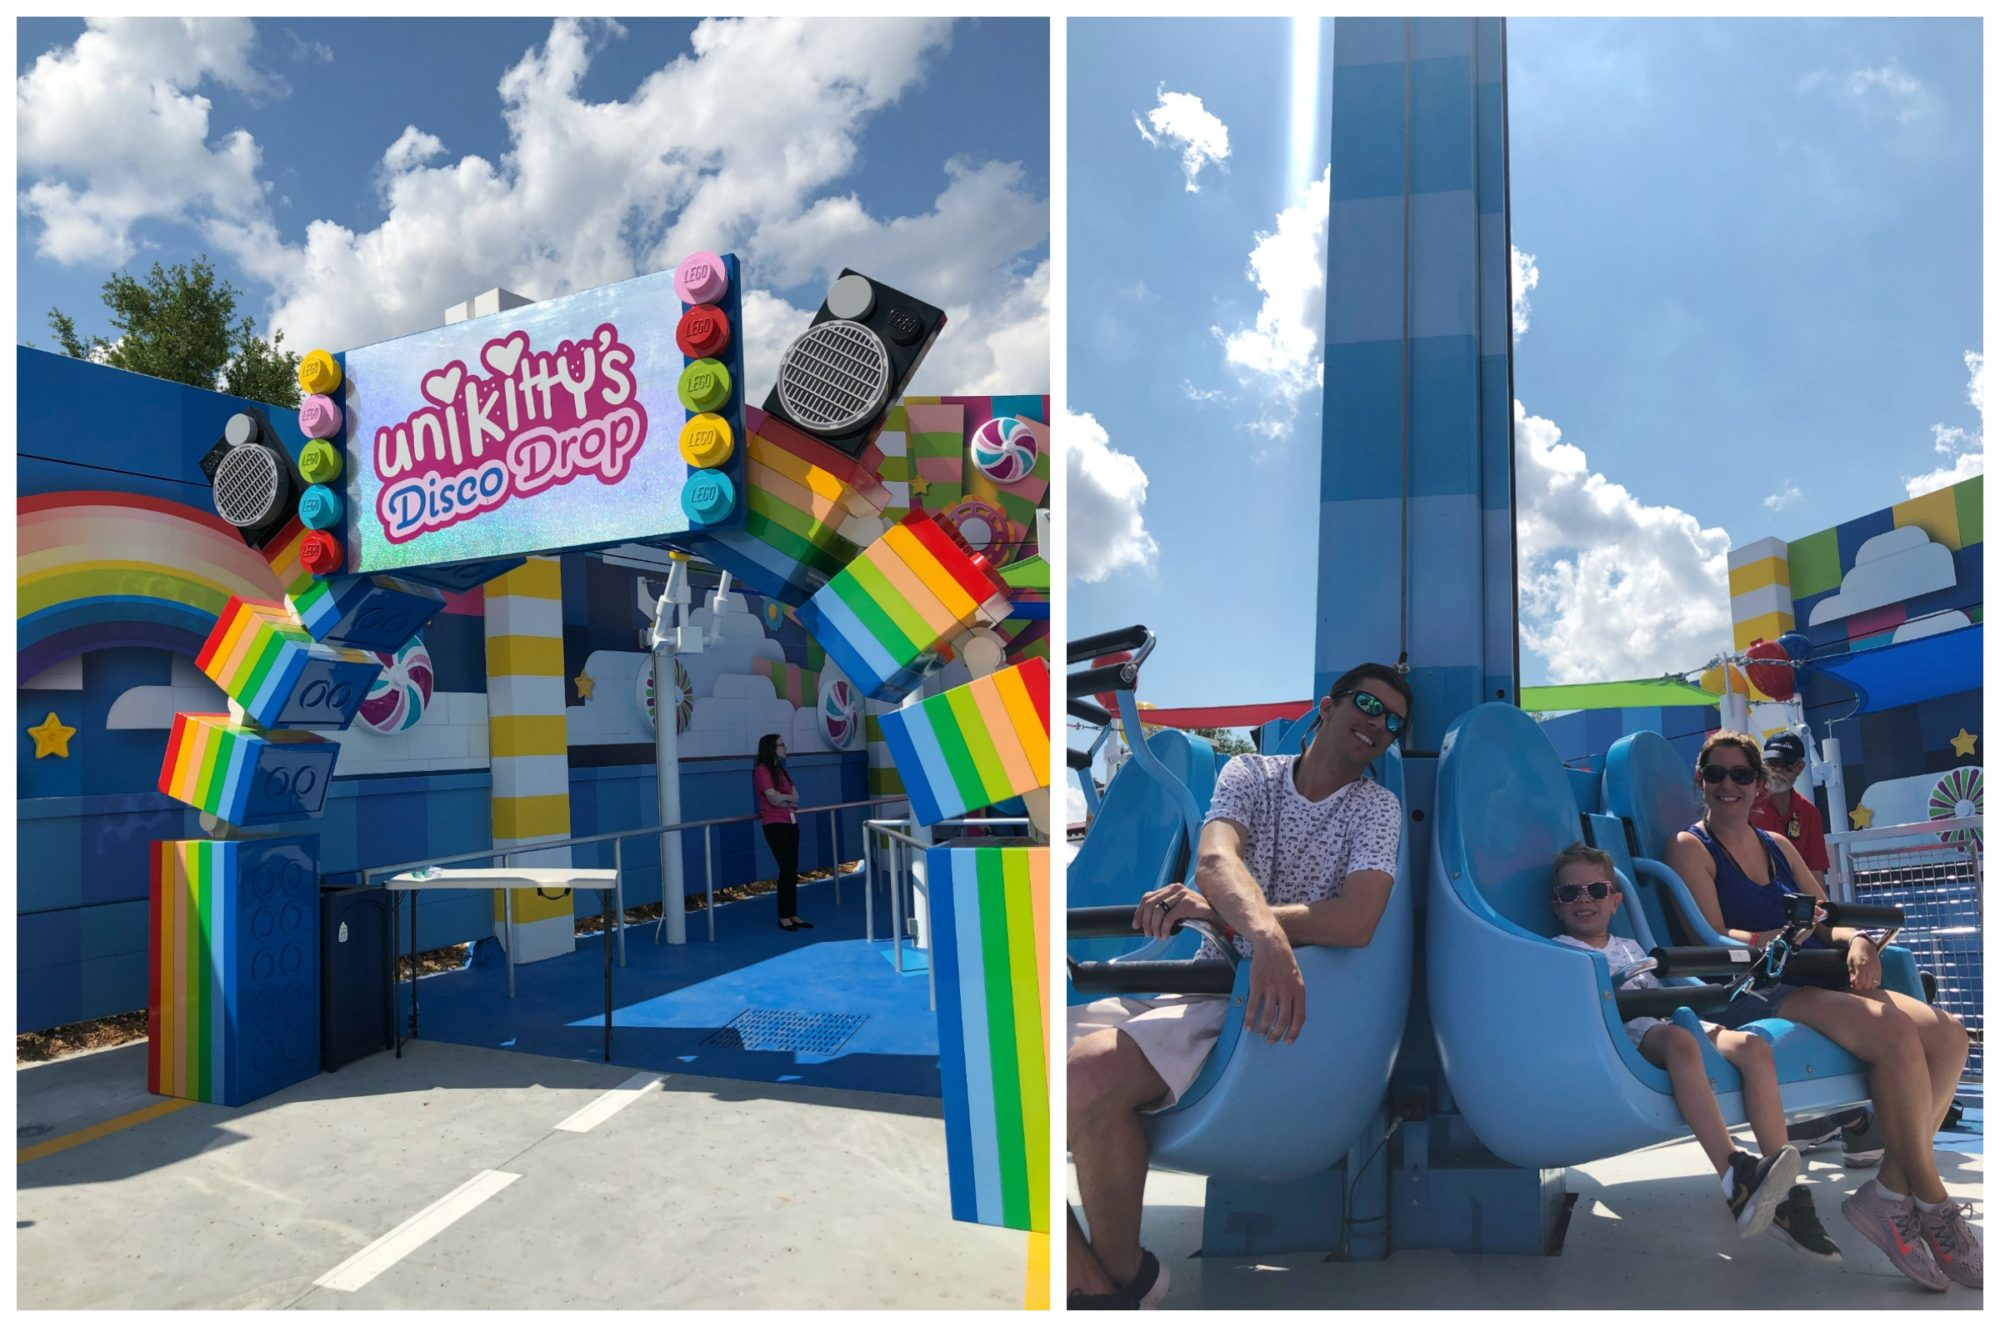 The LEGO MOVIE World - Unikitty's Disco Drop